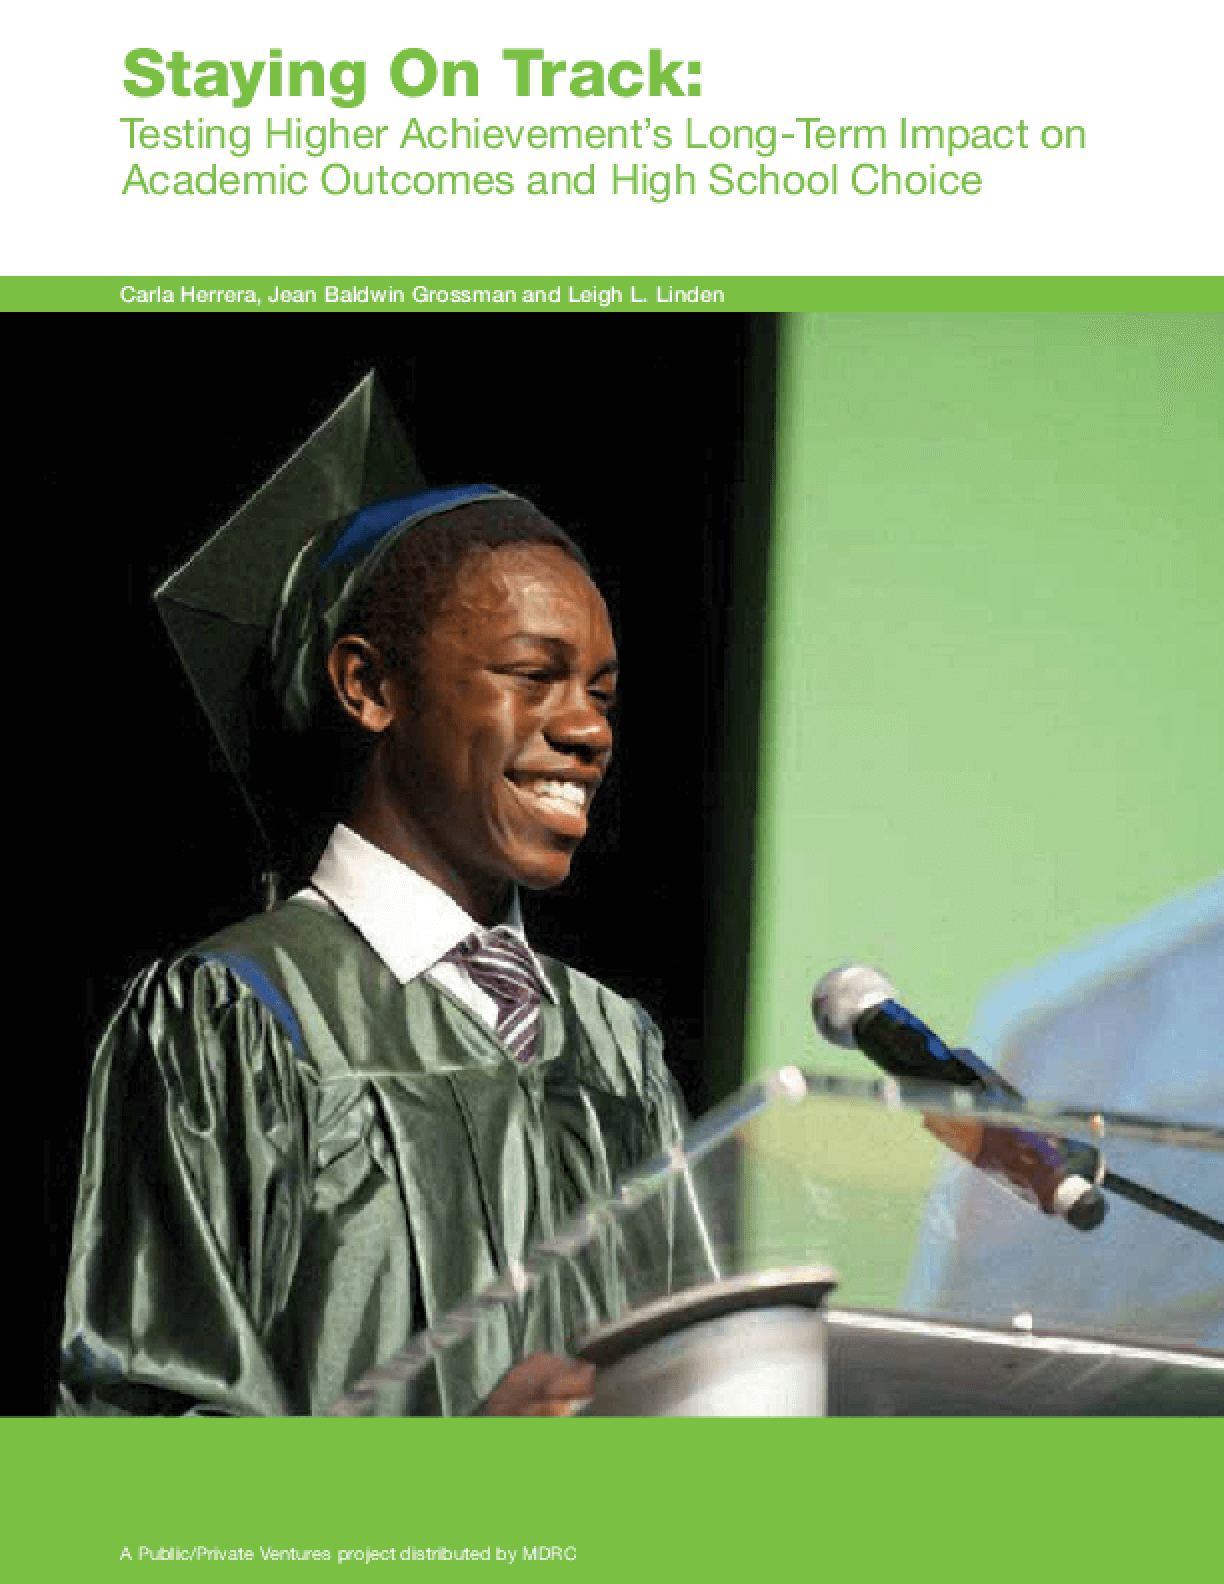 Staying On Track: Testing Higher Achievement's Long-Term Impact on Academic Outcomes and High School Choice